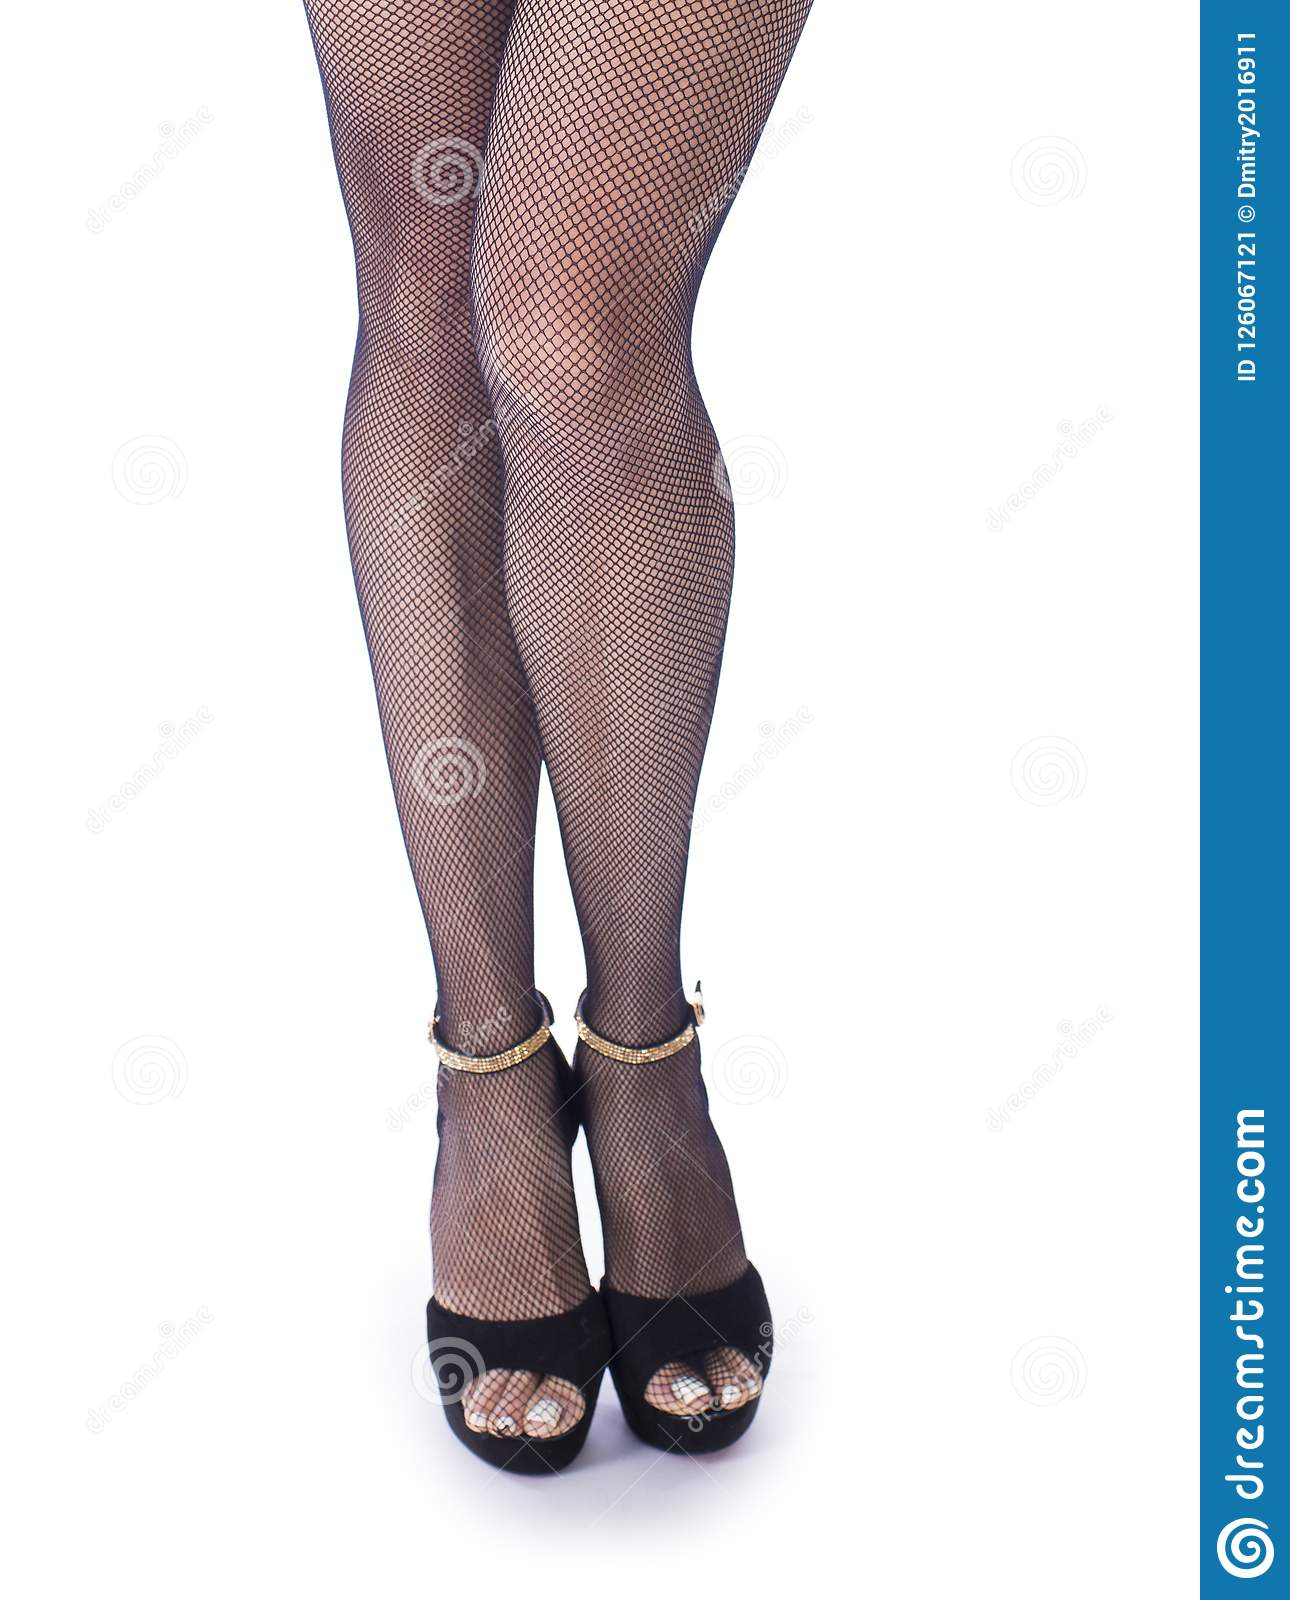 Join. All black high heels and stockings